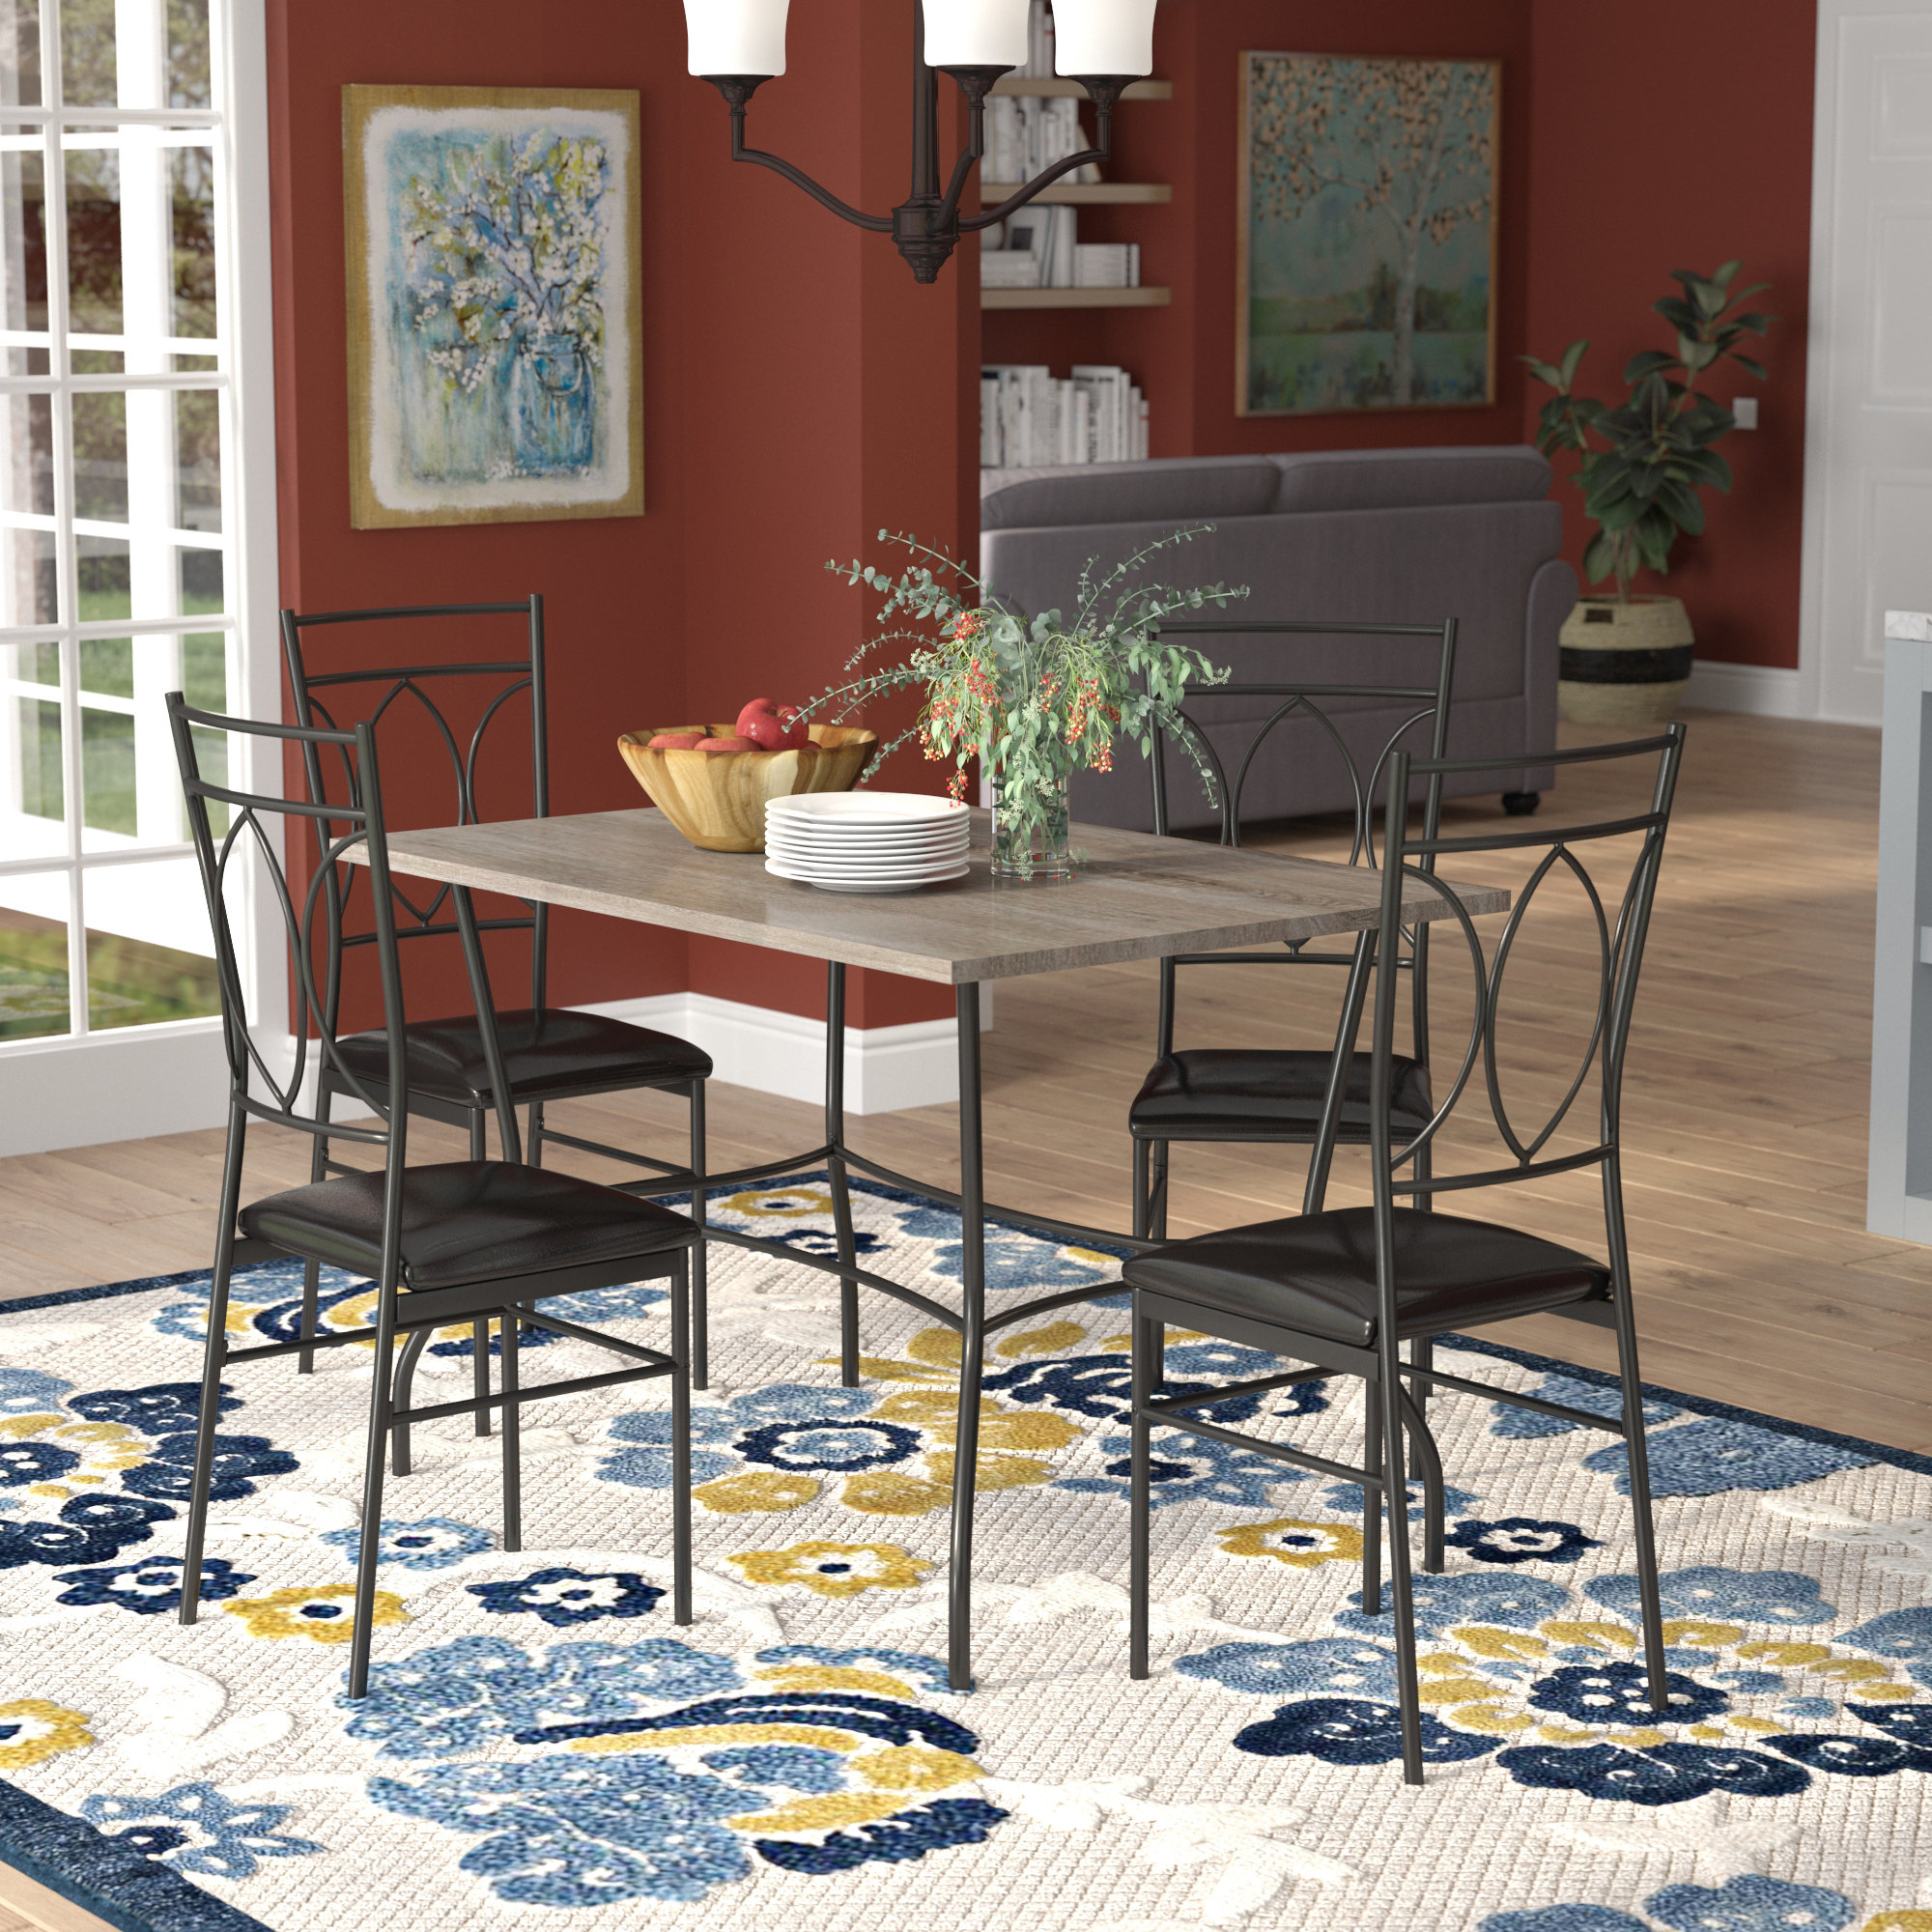 Middleport 5 Piece Dining Sets Inside Famous Malina 5 Piece Dining Set (View 13 of 20)